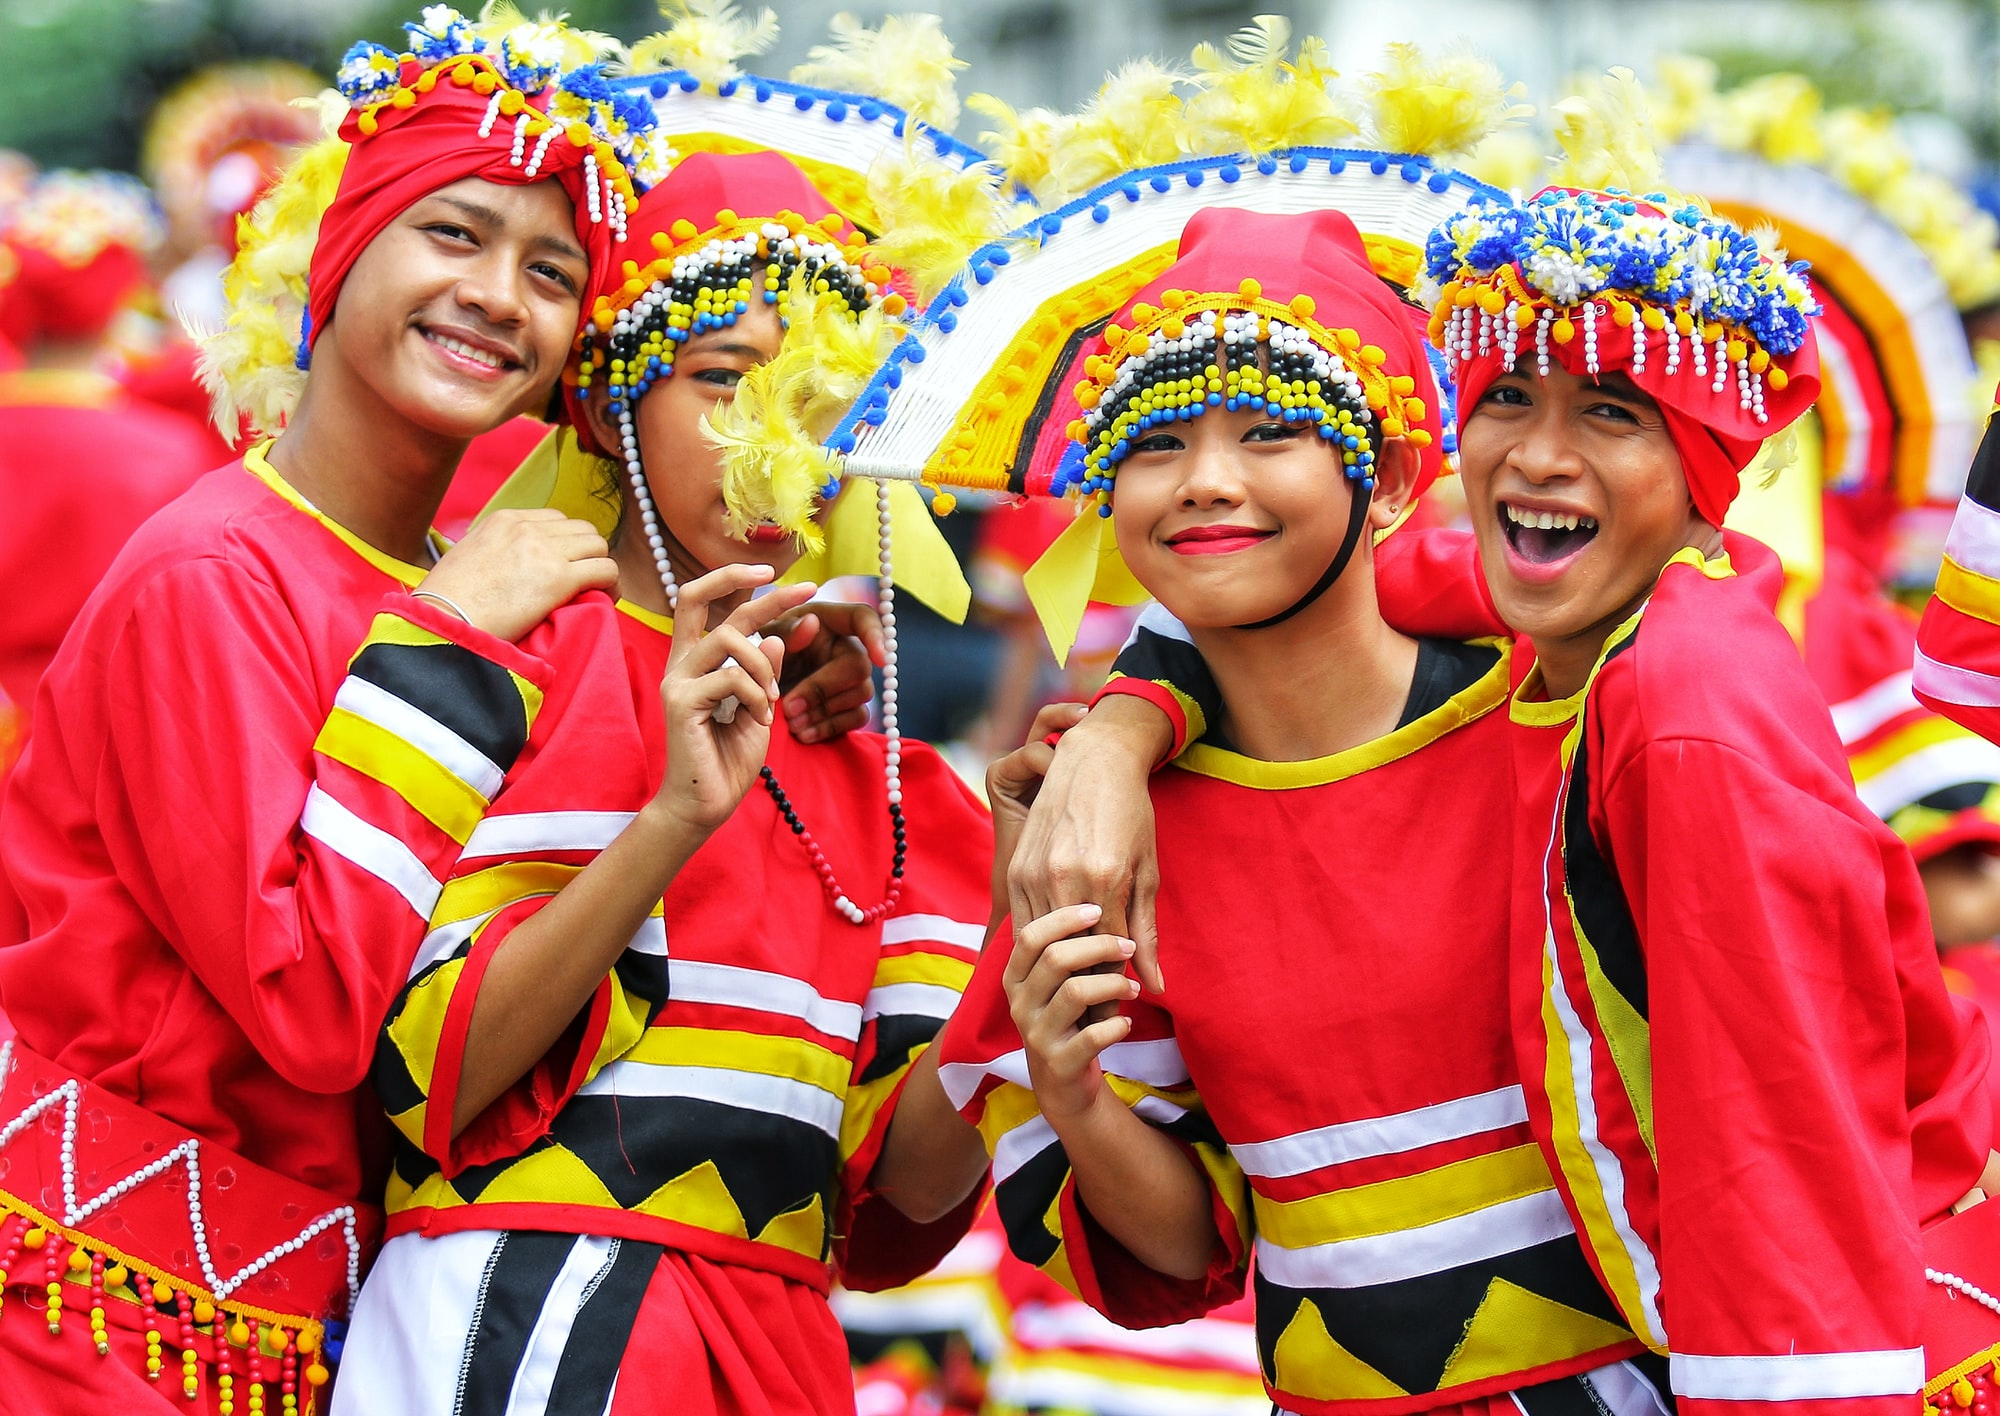 Cheerful Sinulog dancers